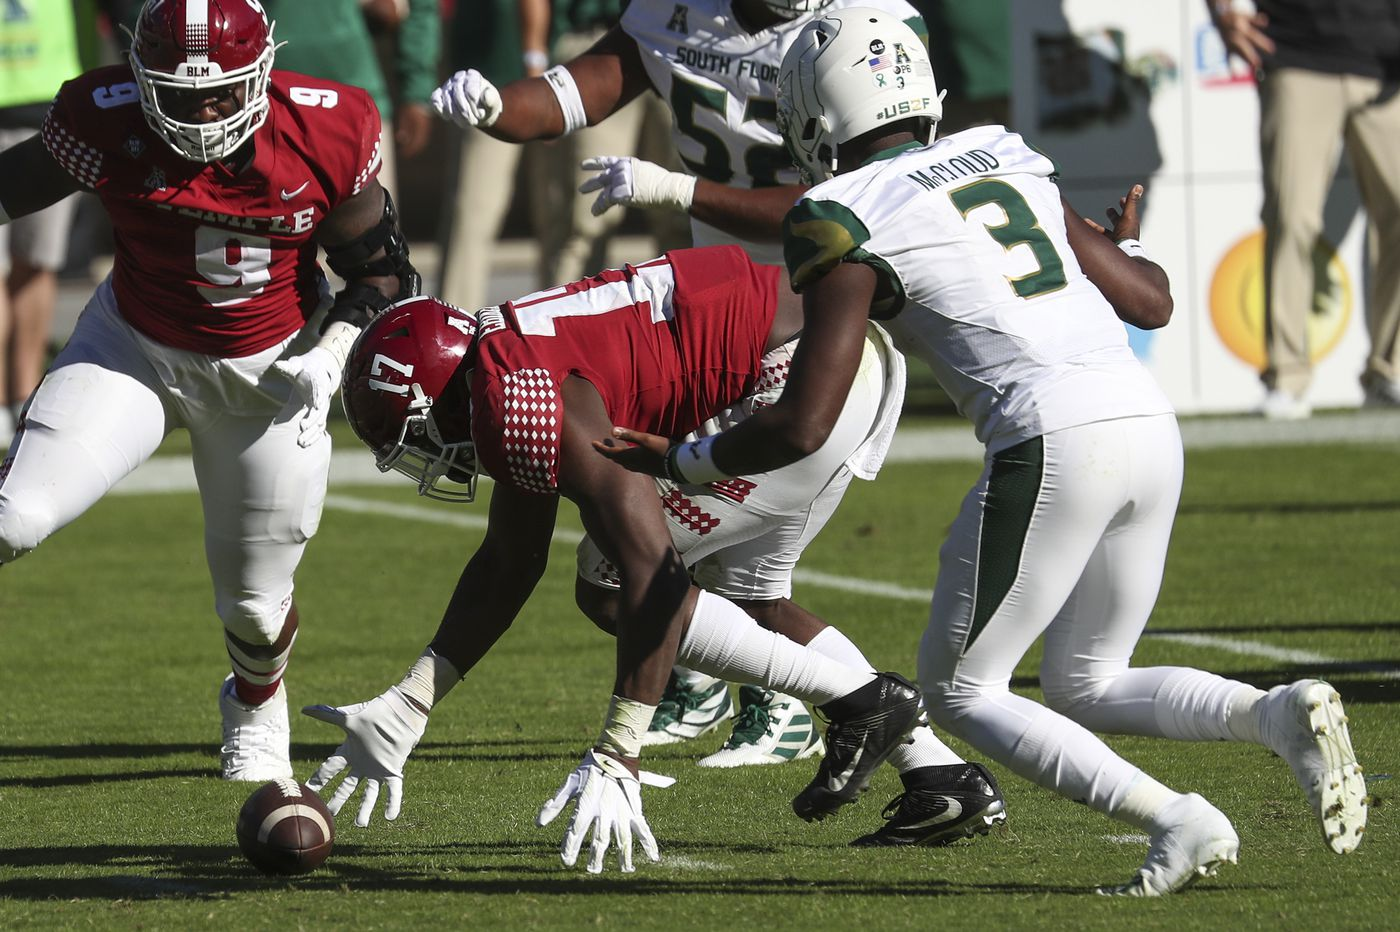 Pride on the line(s) for Temple in tough task against SMU | Marc Narducci